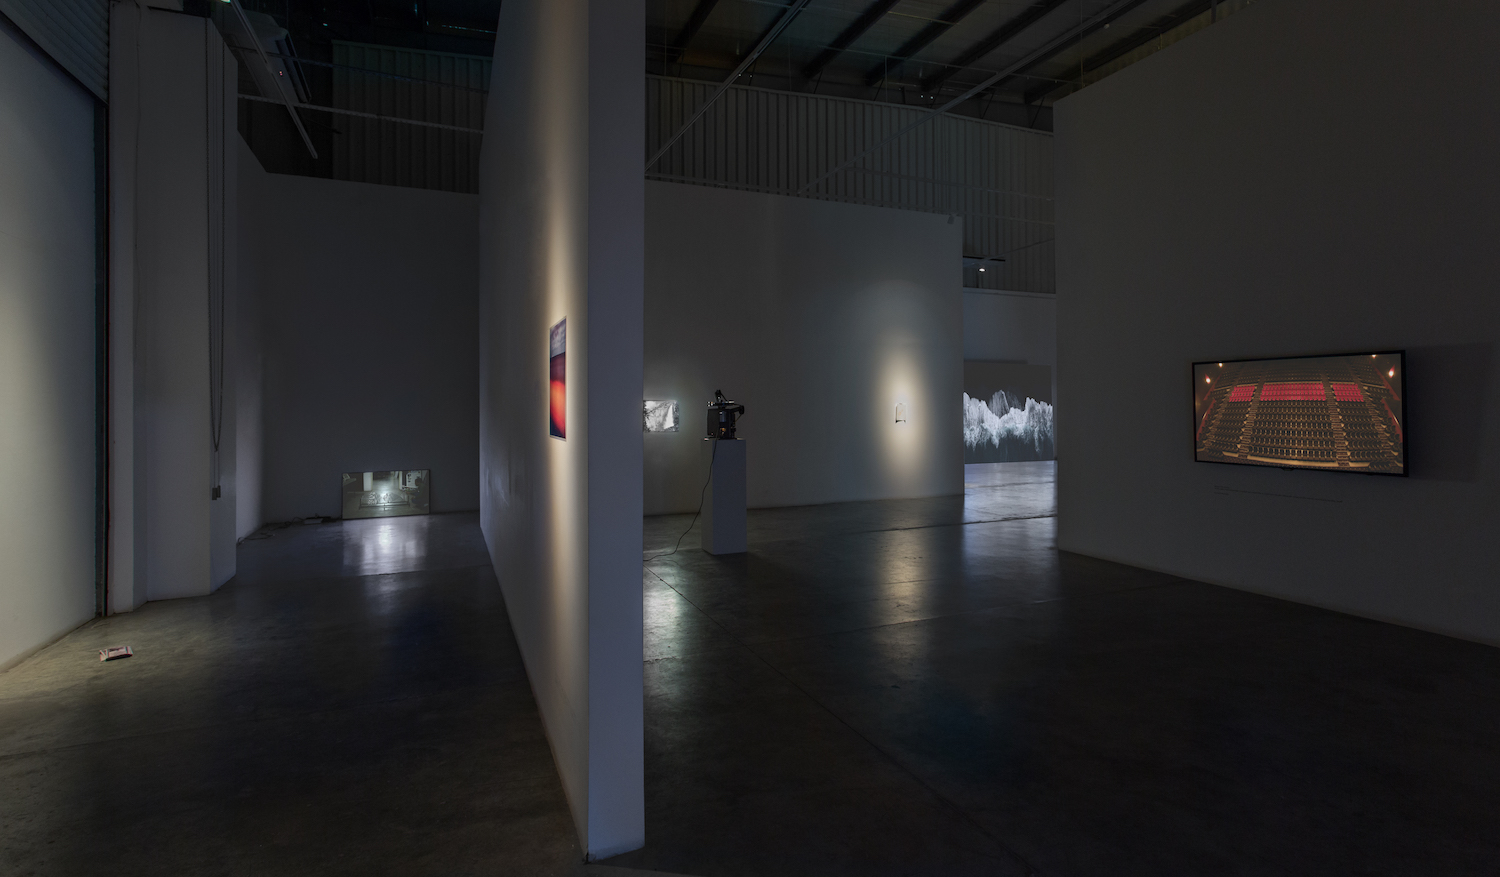 Installation view / when all seemingly stands still